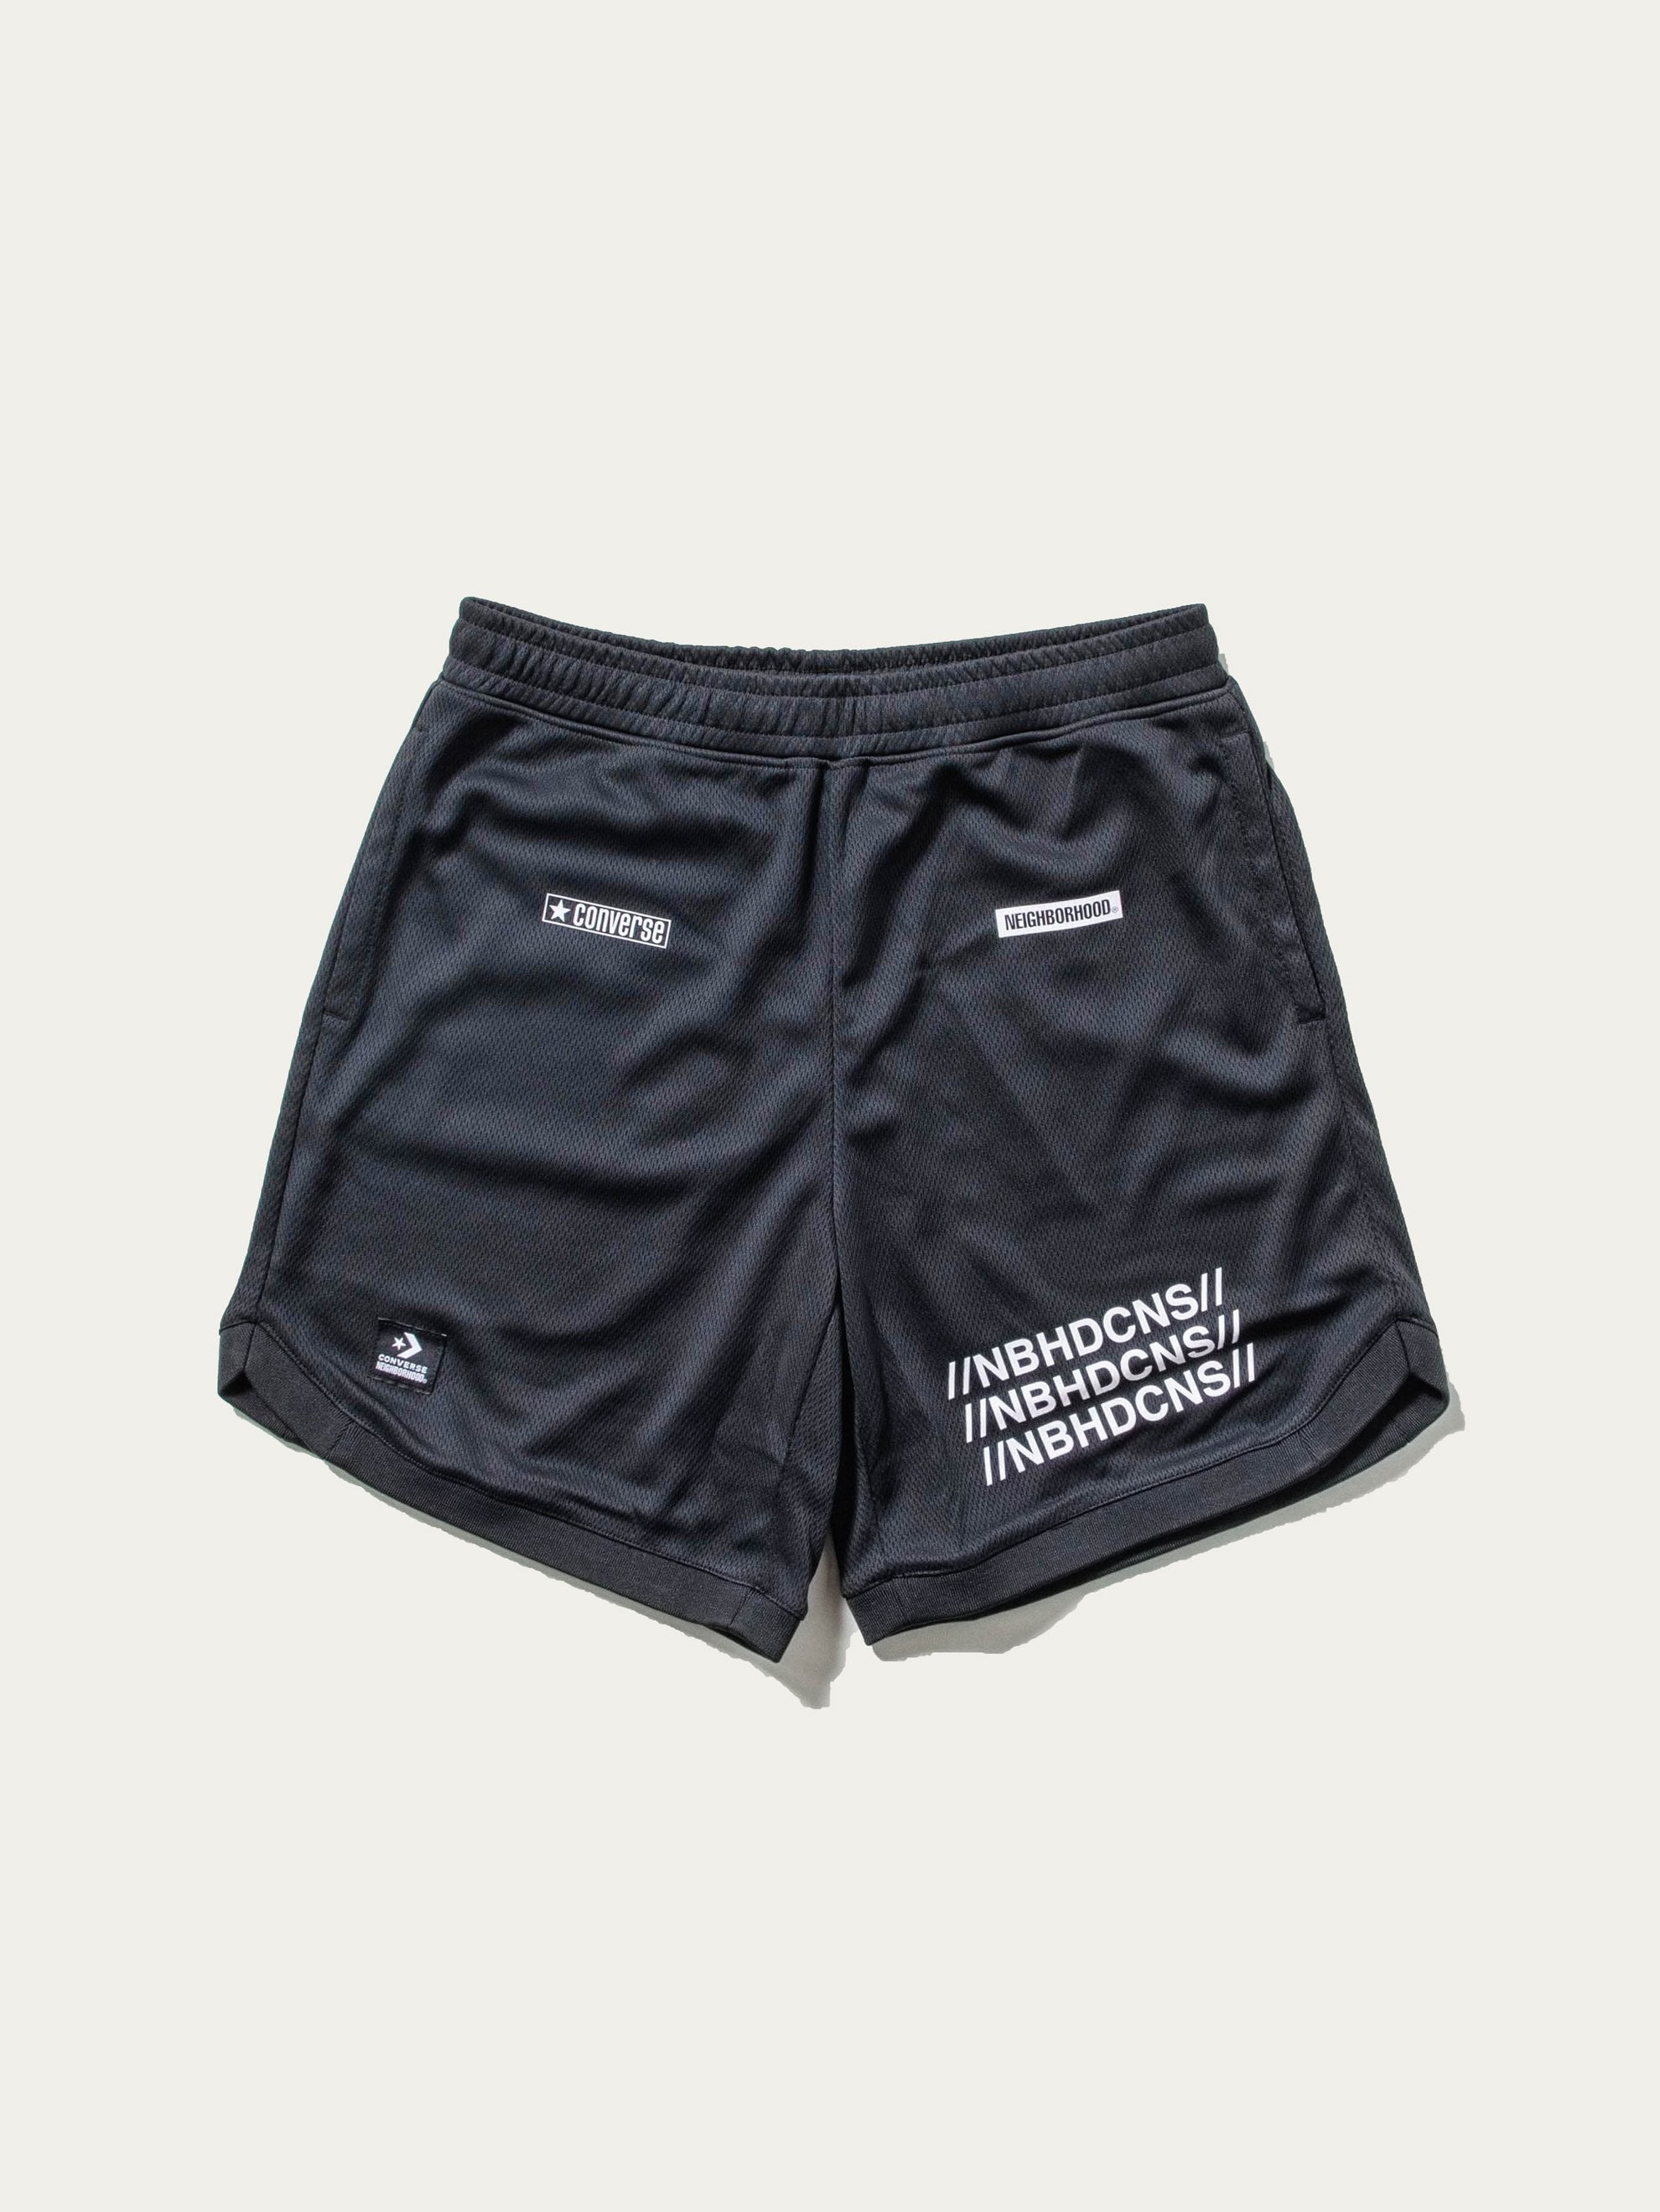 Black Converse x Neighborhood Mesh Short 1